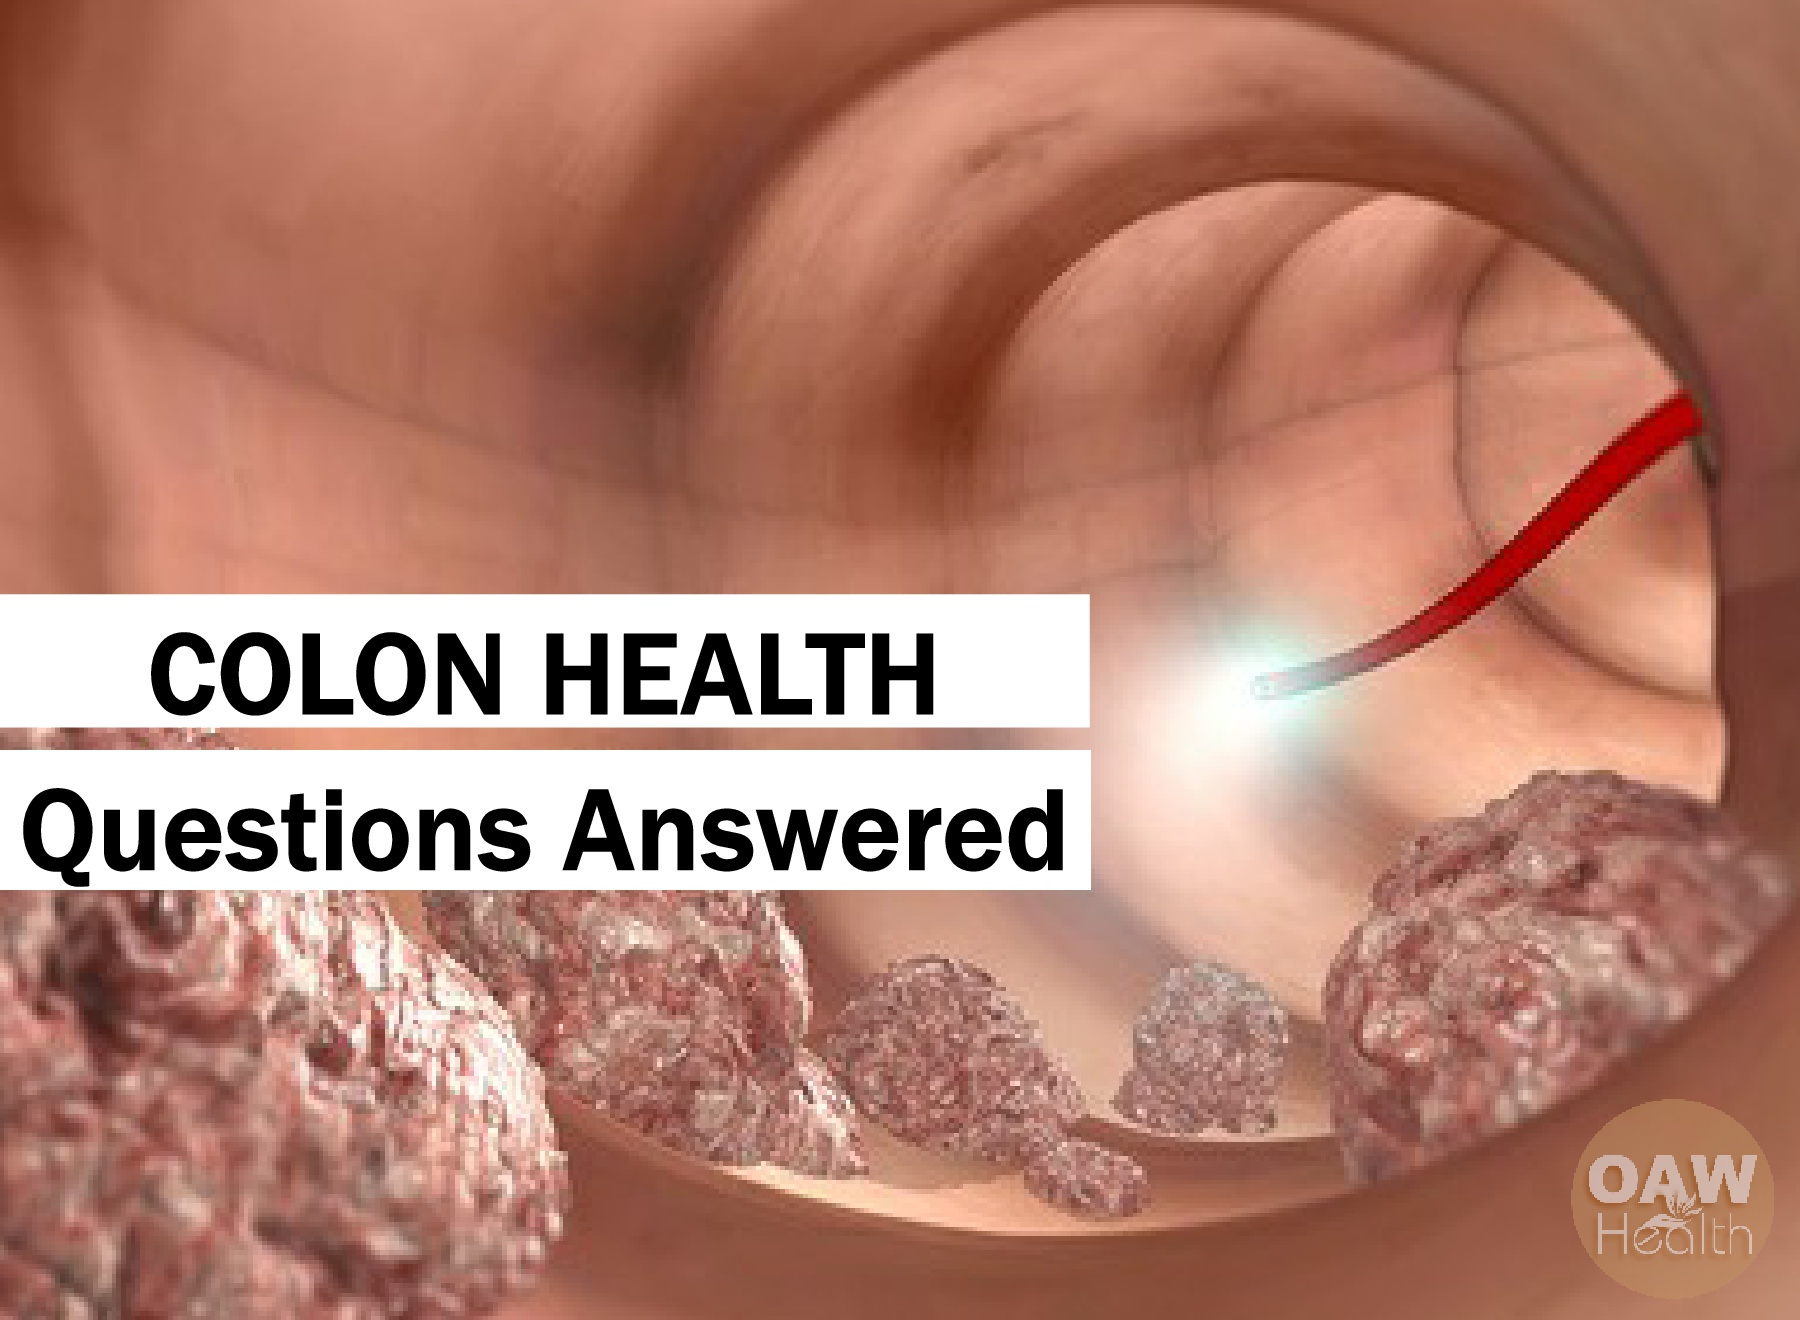 Colon Health Questions Answered